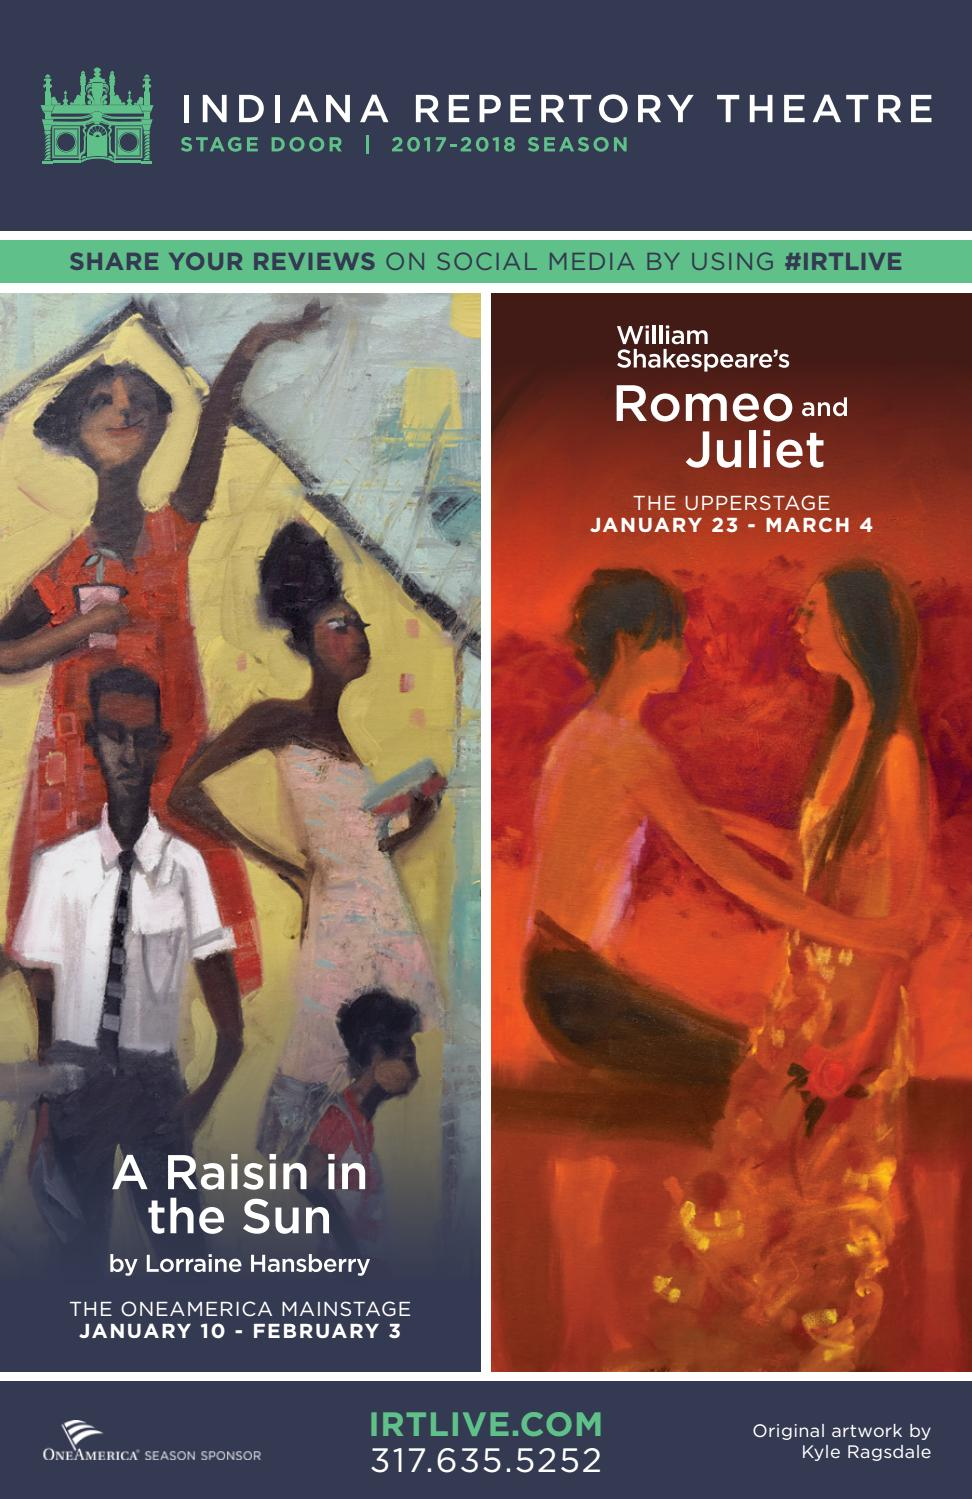 Irt program a raisin in the sun and romeo and juliet by irt program a raisin in the sun and romeo and juliet by indiana repertory theatre issuu biocorpaavc